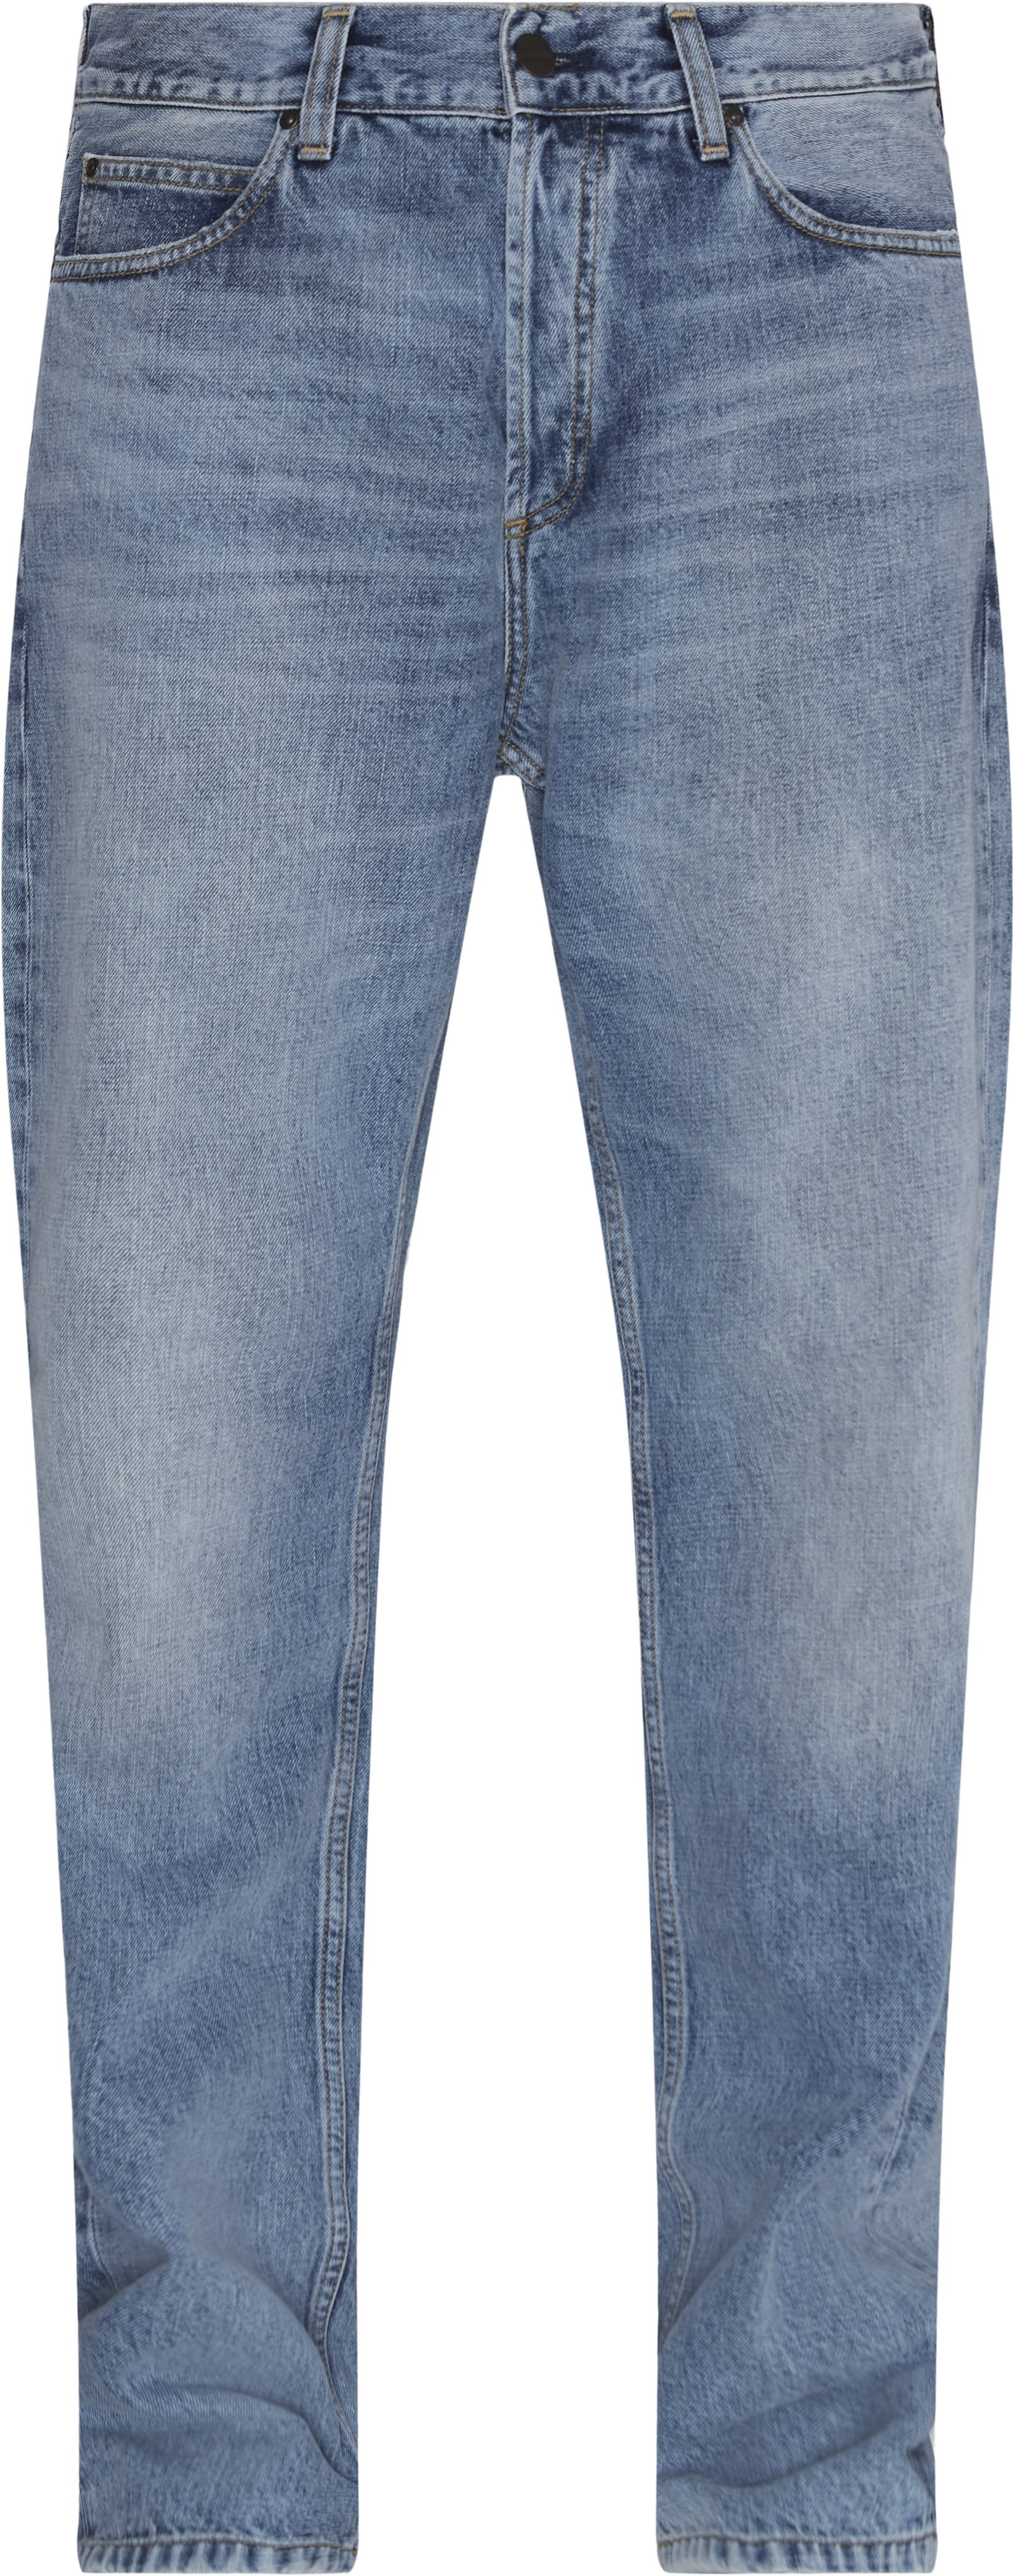 Marlow Pant I023029 - Jeans - Relaxed fit - Denim